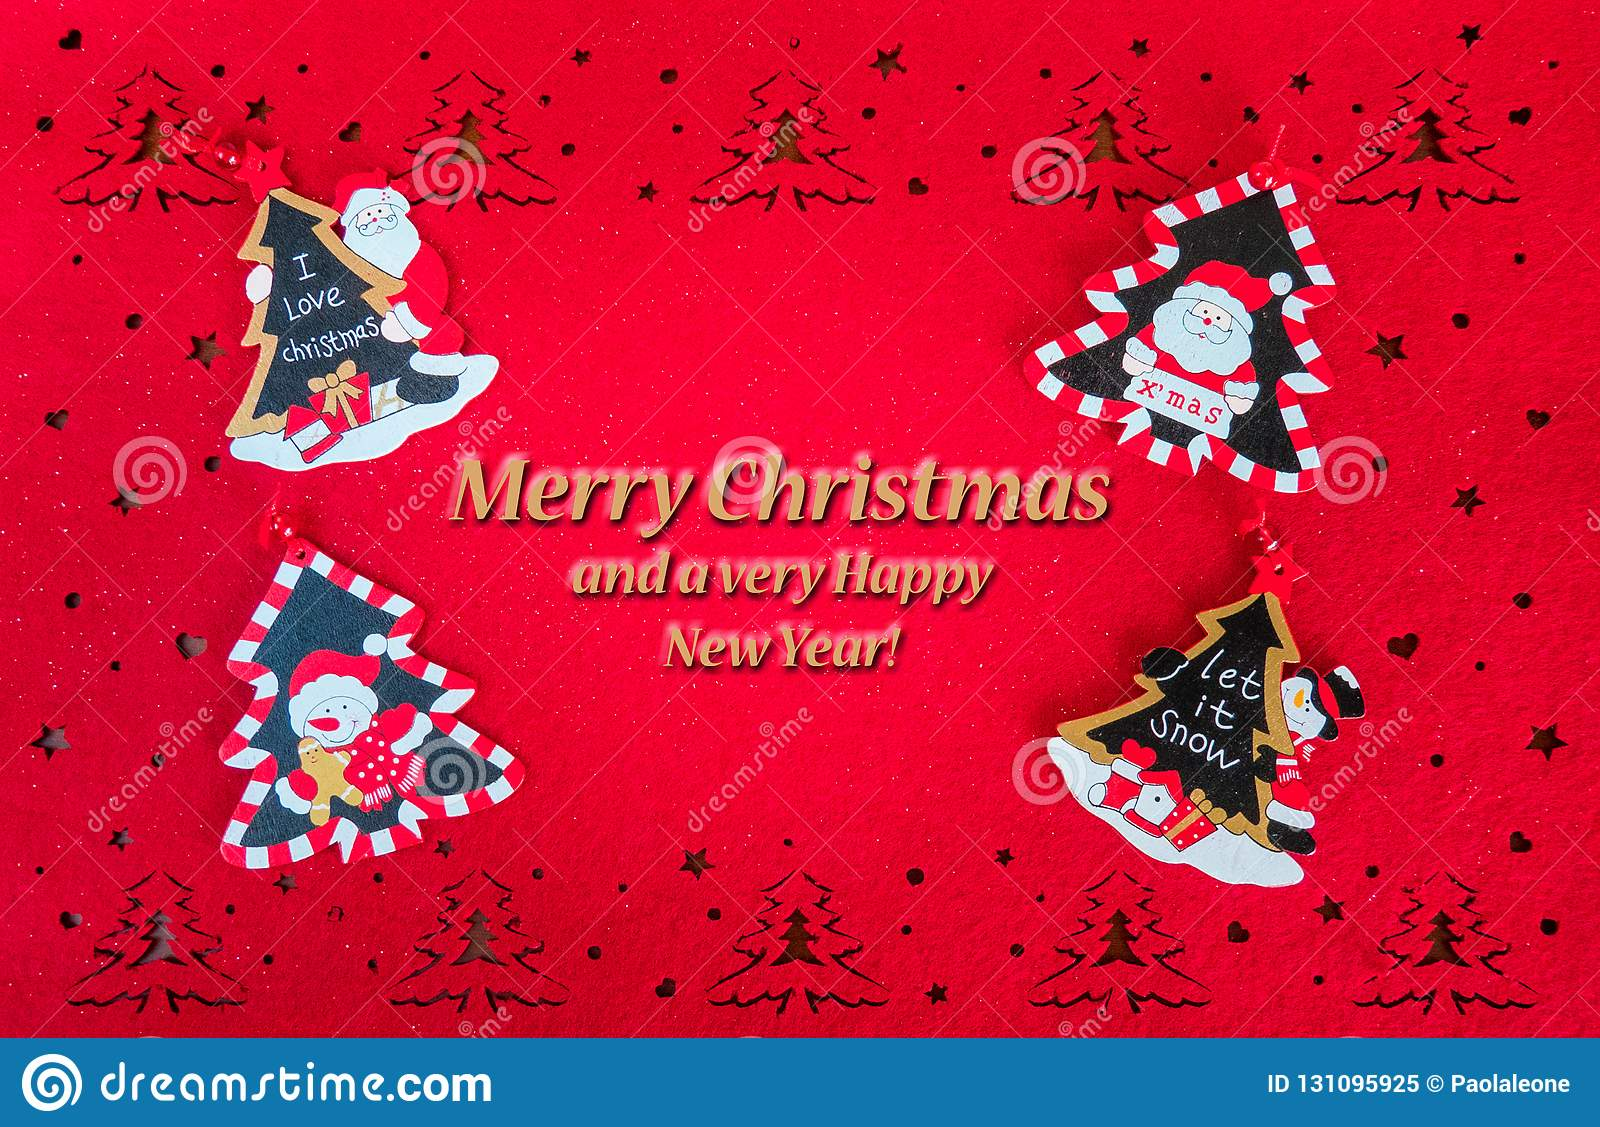 Christmas Red Card with Greetings Text, and Decorations Trees, Santa and Snowmen